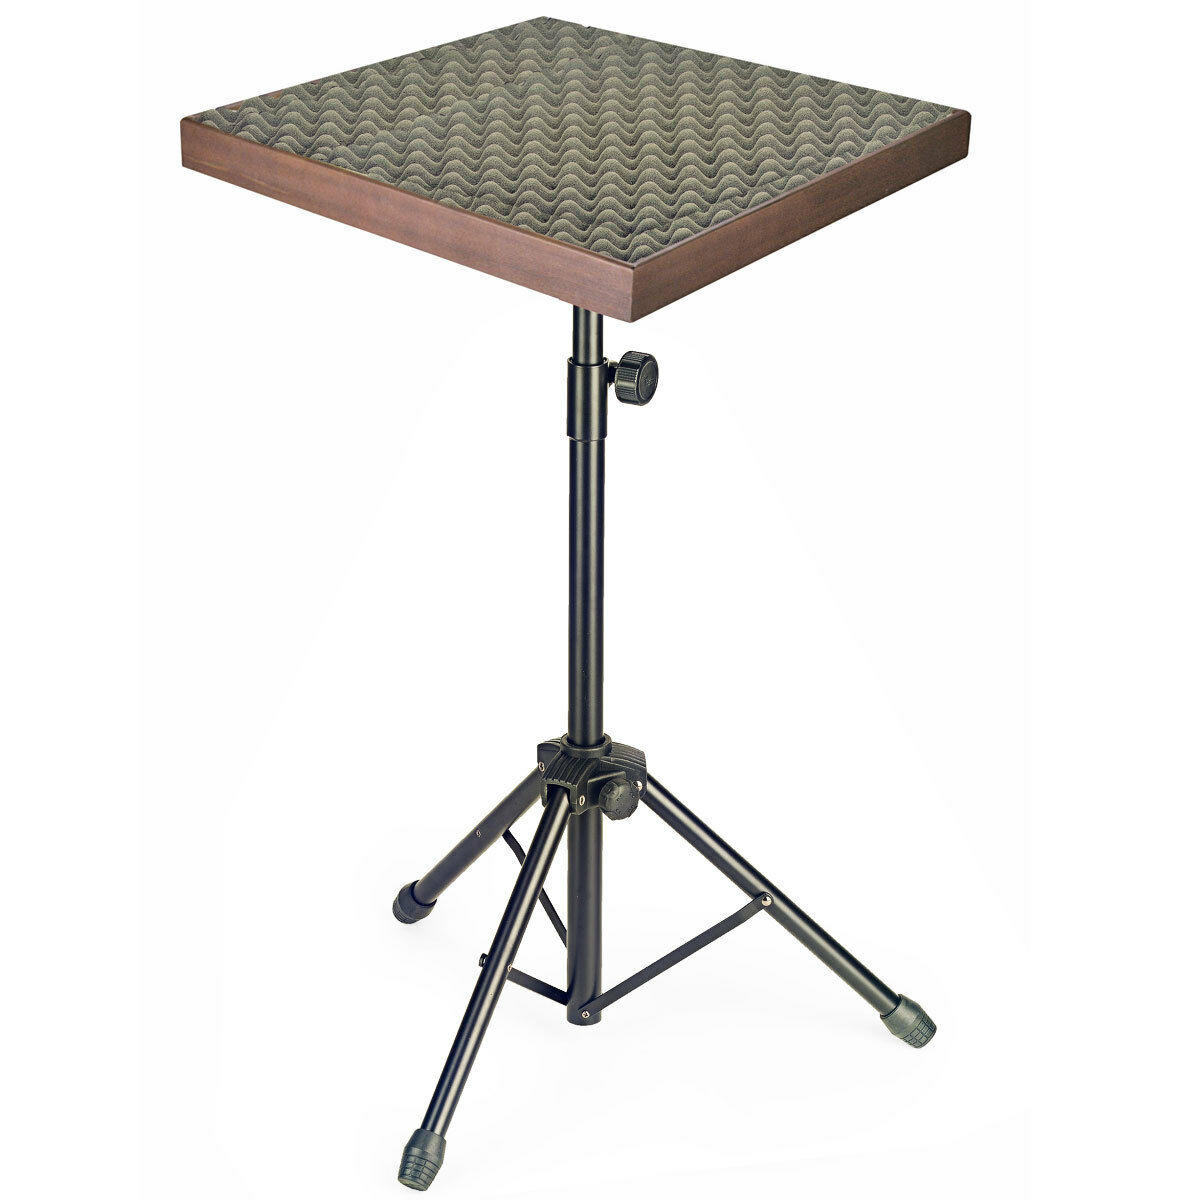 Stagg PCT-500 Percussiontisch Percussion Tisch Holz